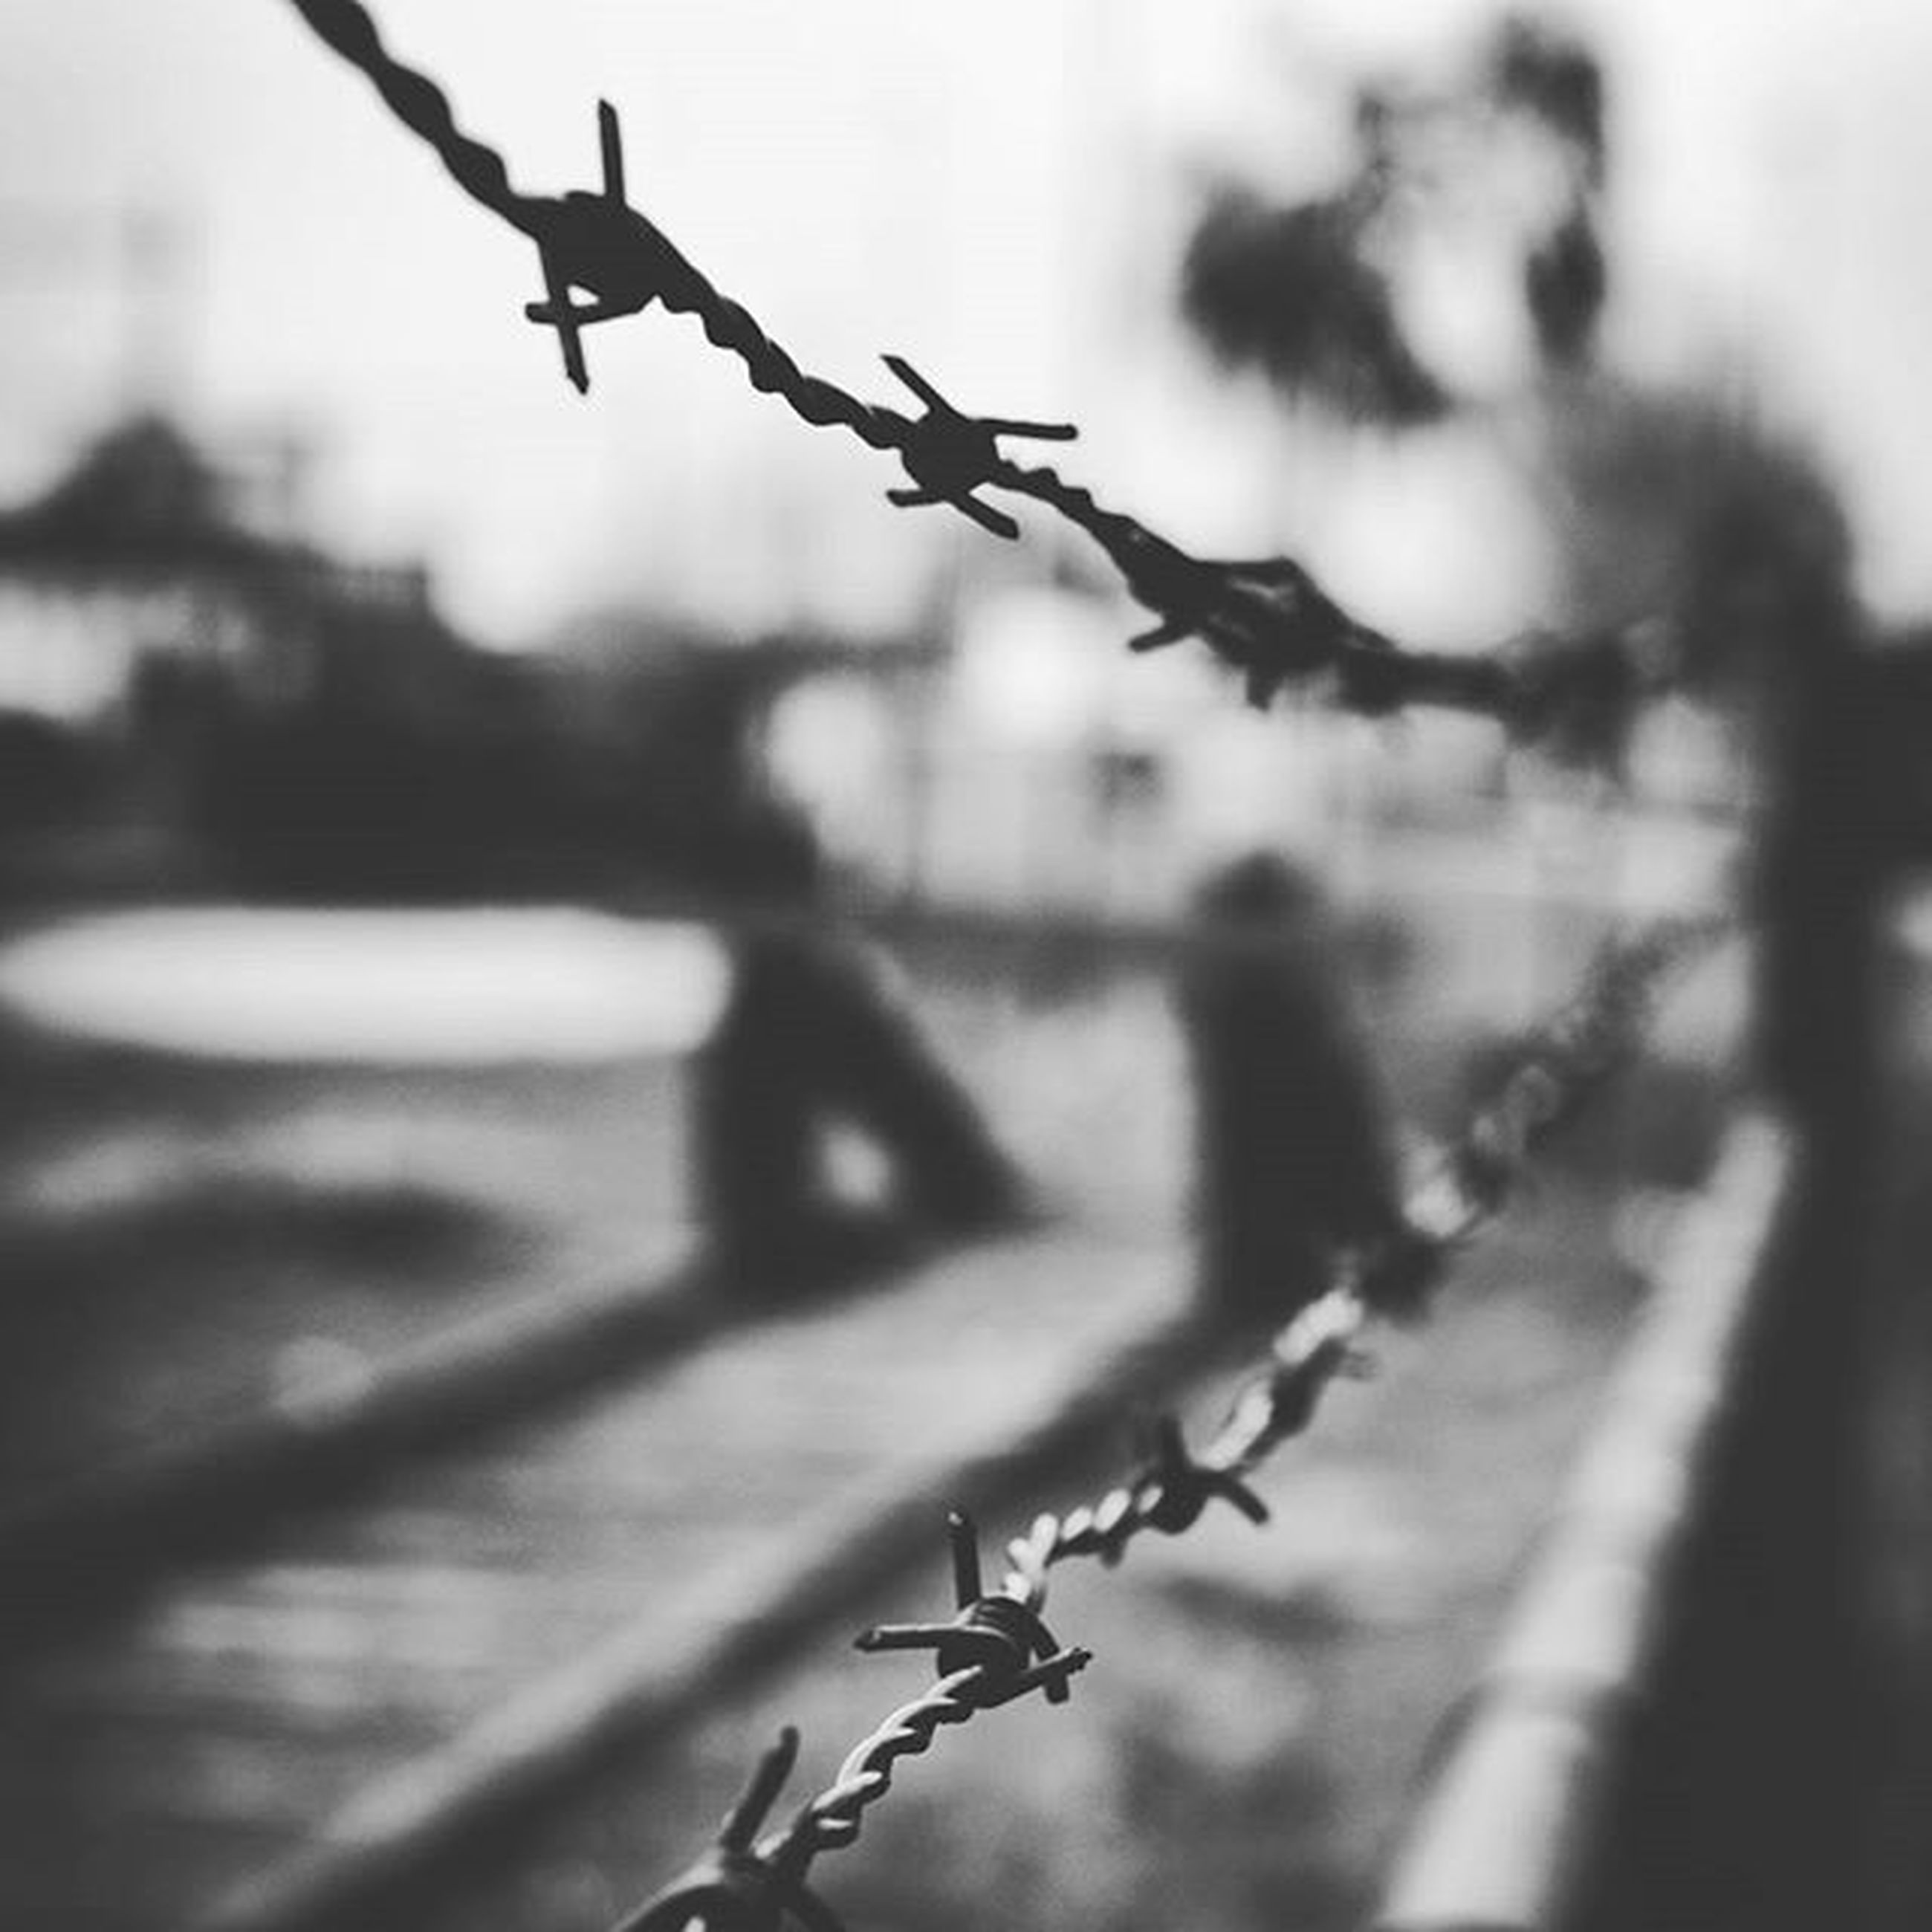 focus on foreground, fence, close-up, selective focus, metal, protection, safety, day, outdoors, barbed wire, railing, hanging, security, no people, metallic, nature, sunlight, in a row, twig, wire